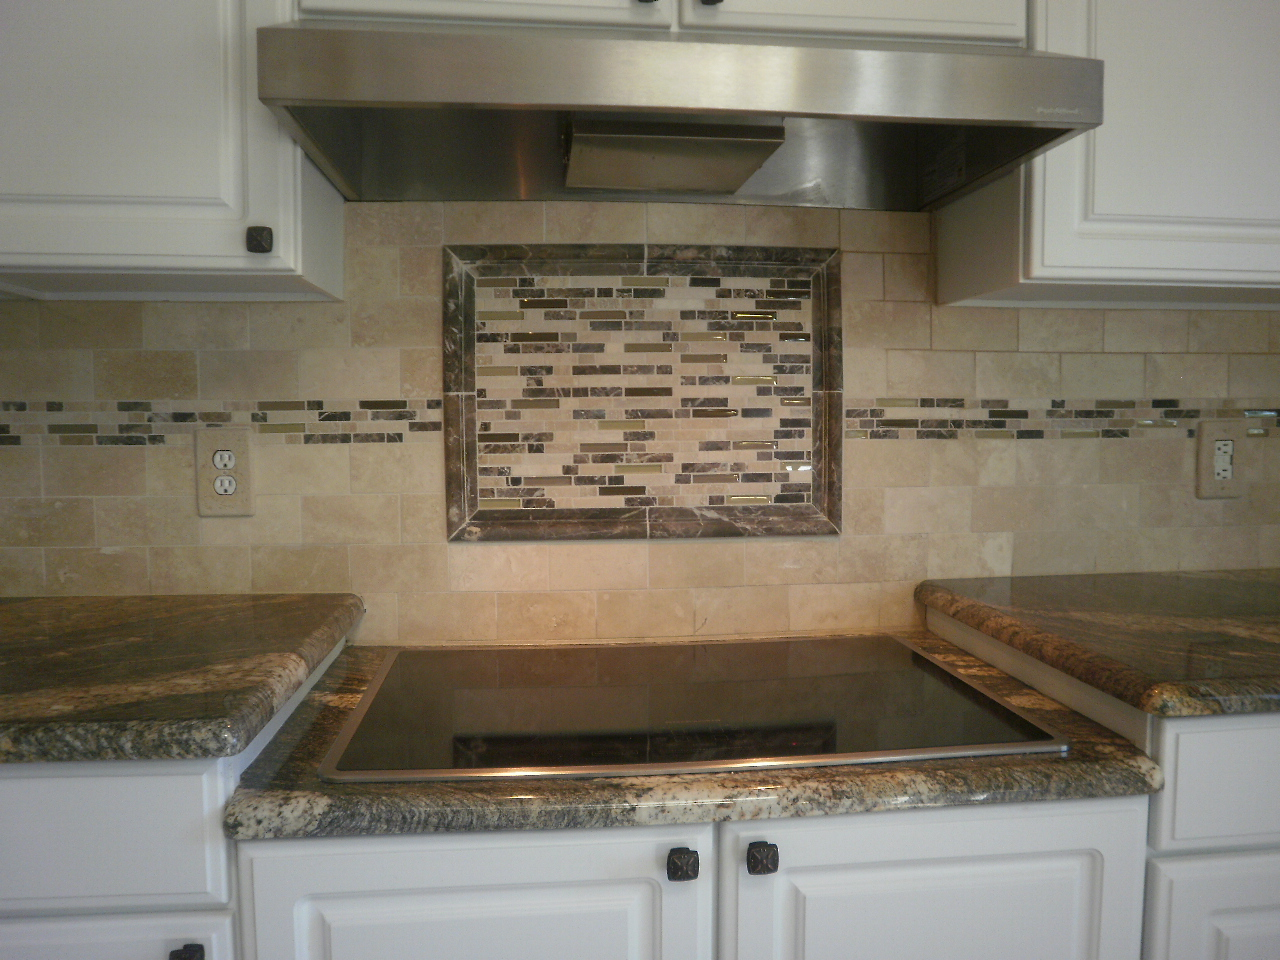 Kitchen backsplash ideas glass tile afreakatheart for Kitchen backsplash tile patterns